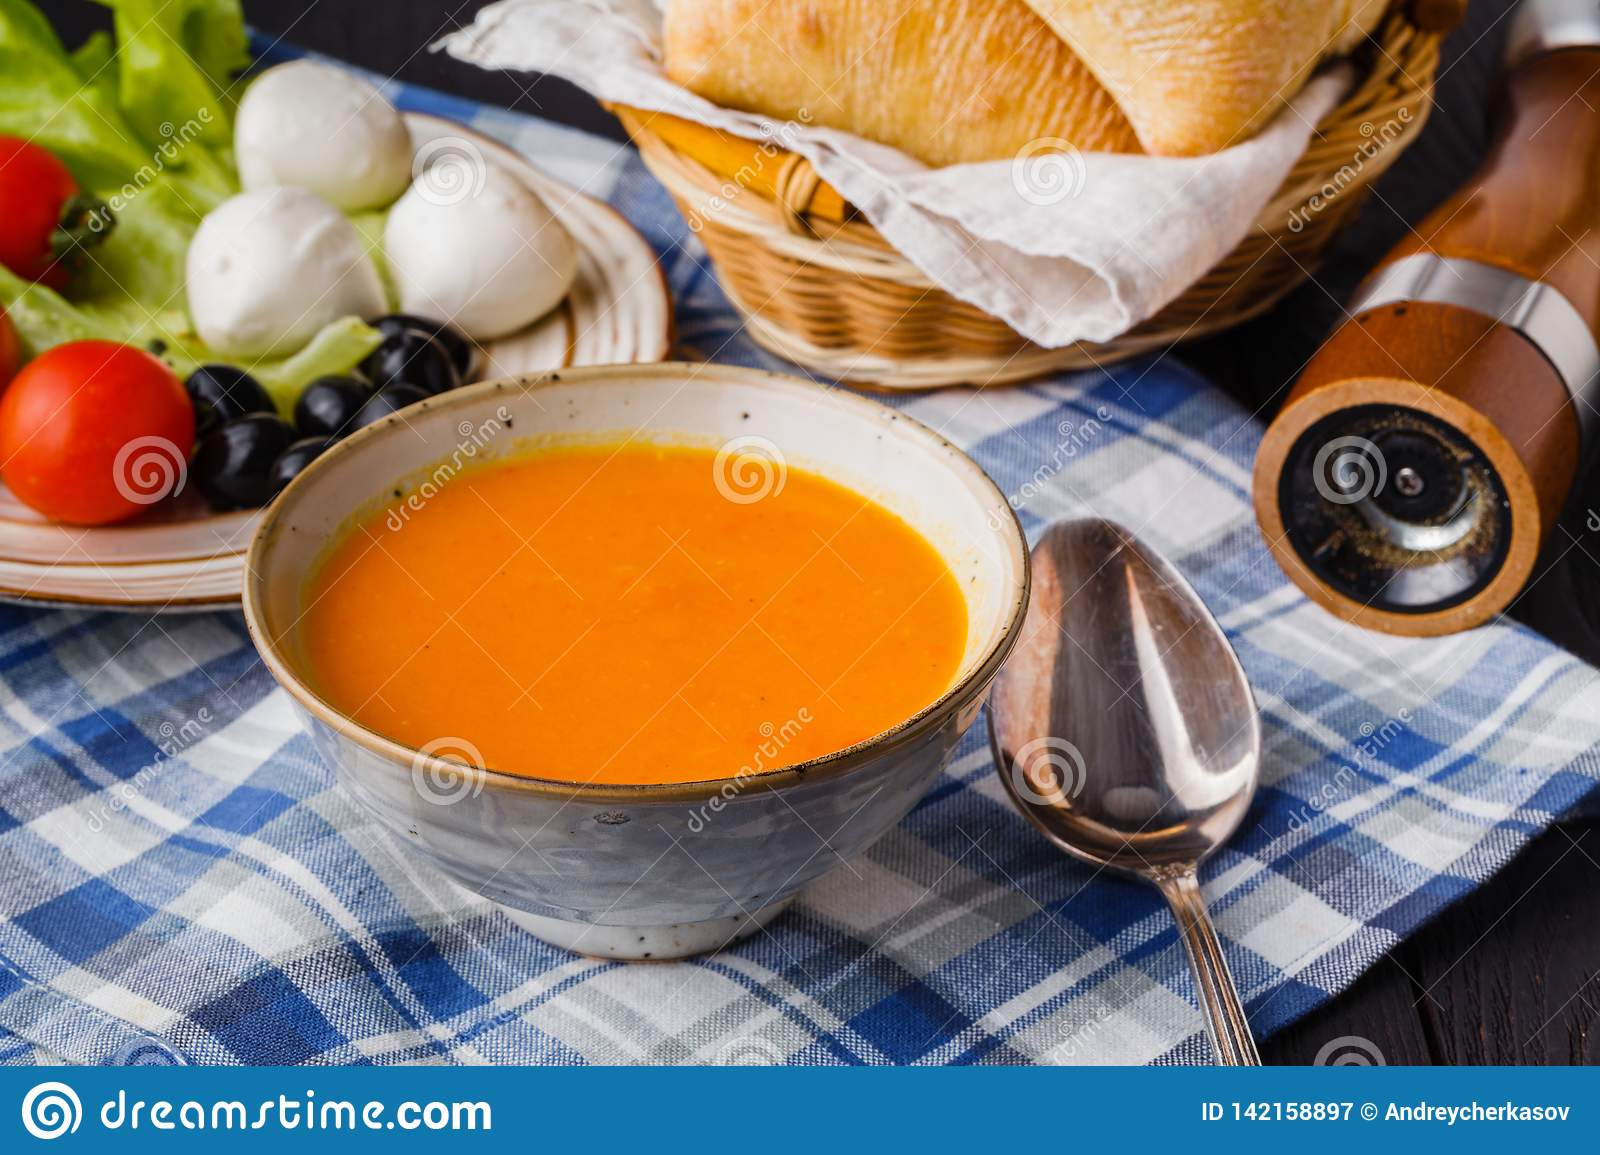 Traditional pumpkin soup, tasty and warming